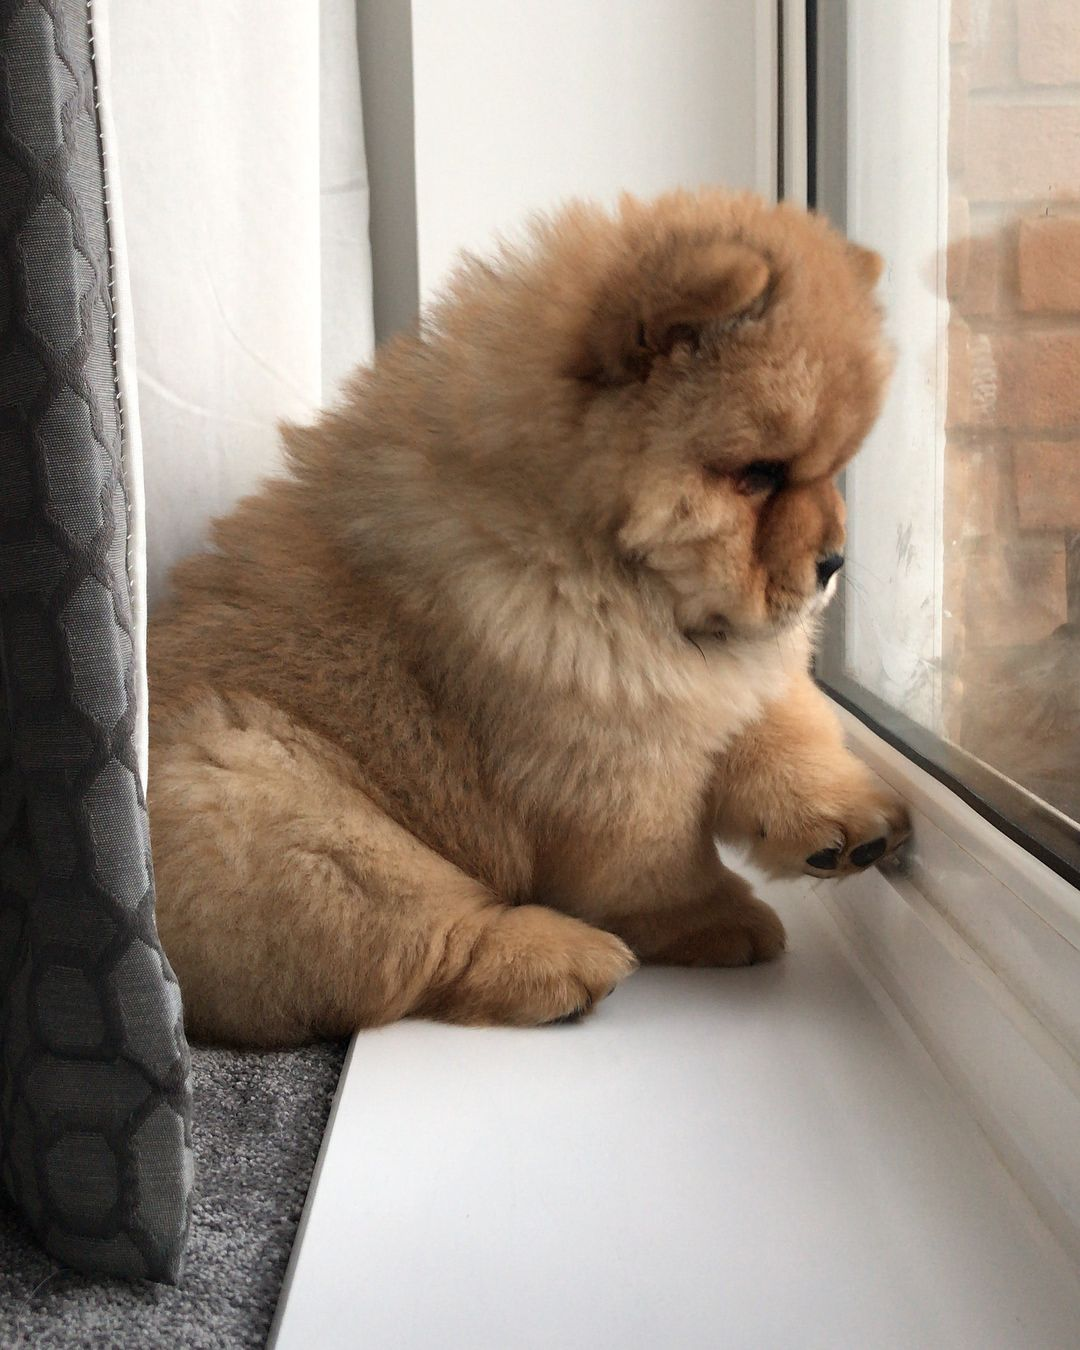 Chow Chow Cute Baby Animals Fluffy Dogs Chow Chow Puppy